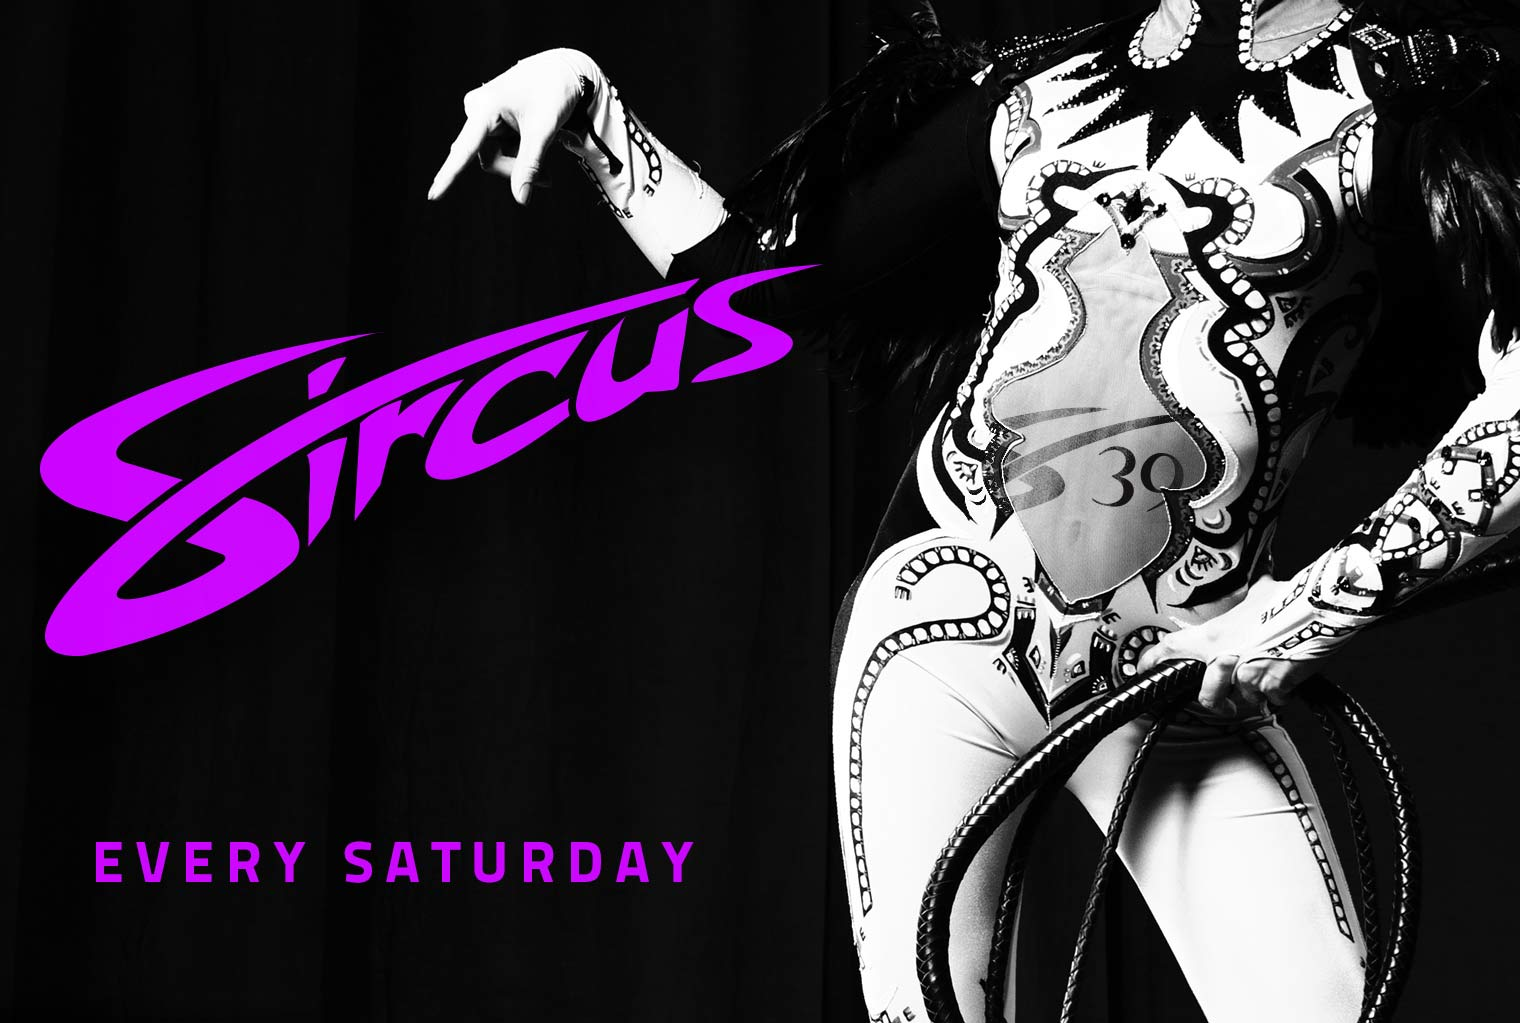 Sapphire 39 presents Sircus every Saturday